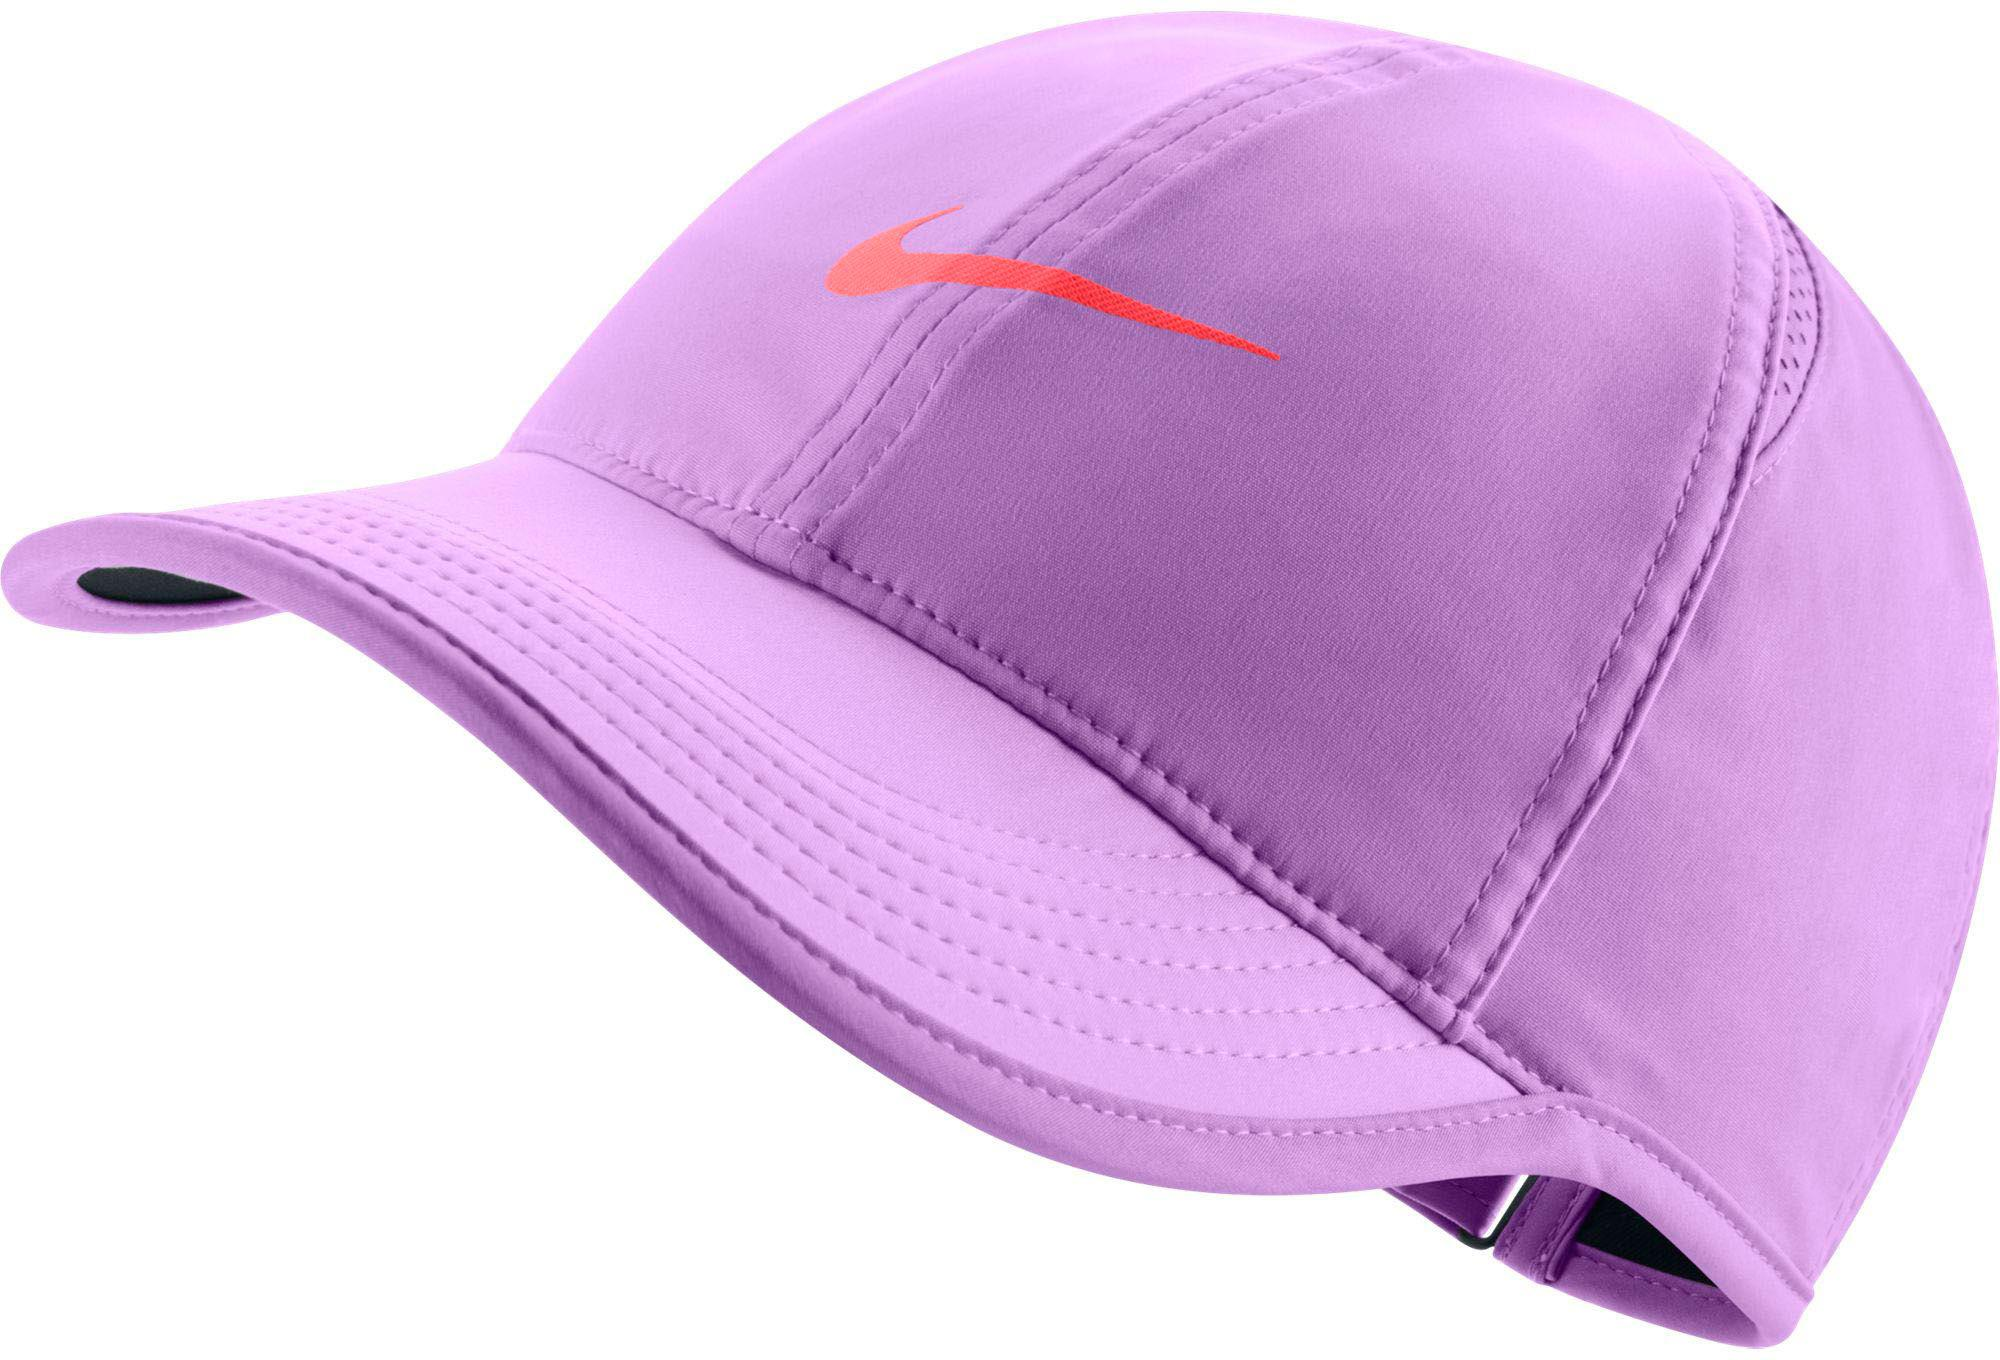 24b4e02c9b3 Lyst - Nike Feather Light Adjustable Hat in Purple